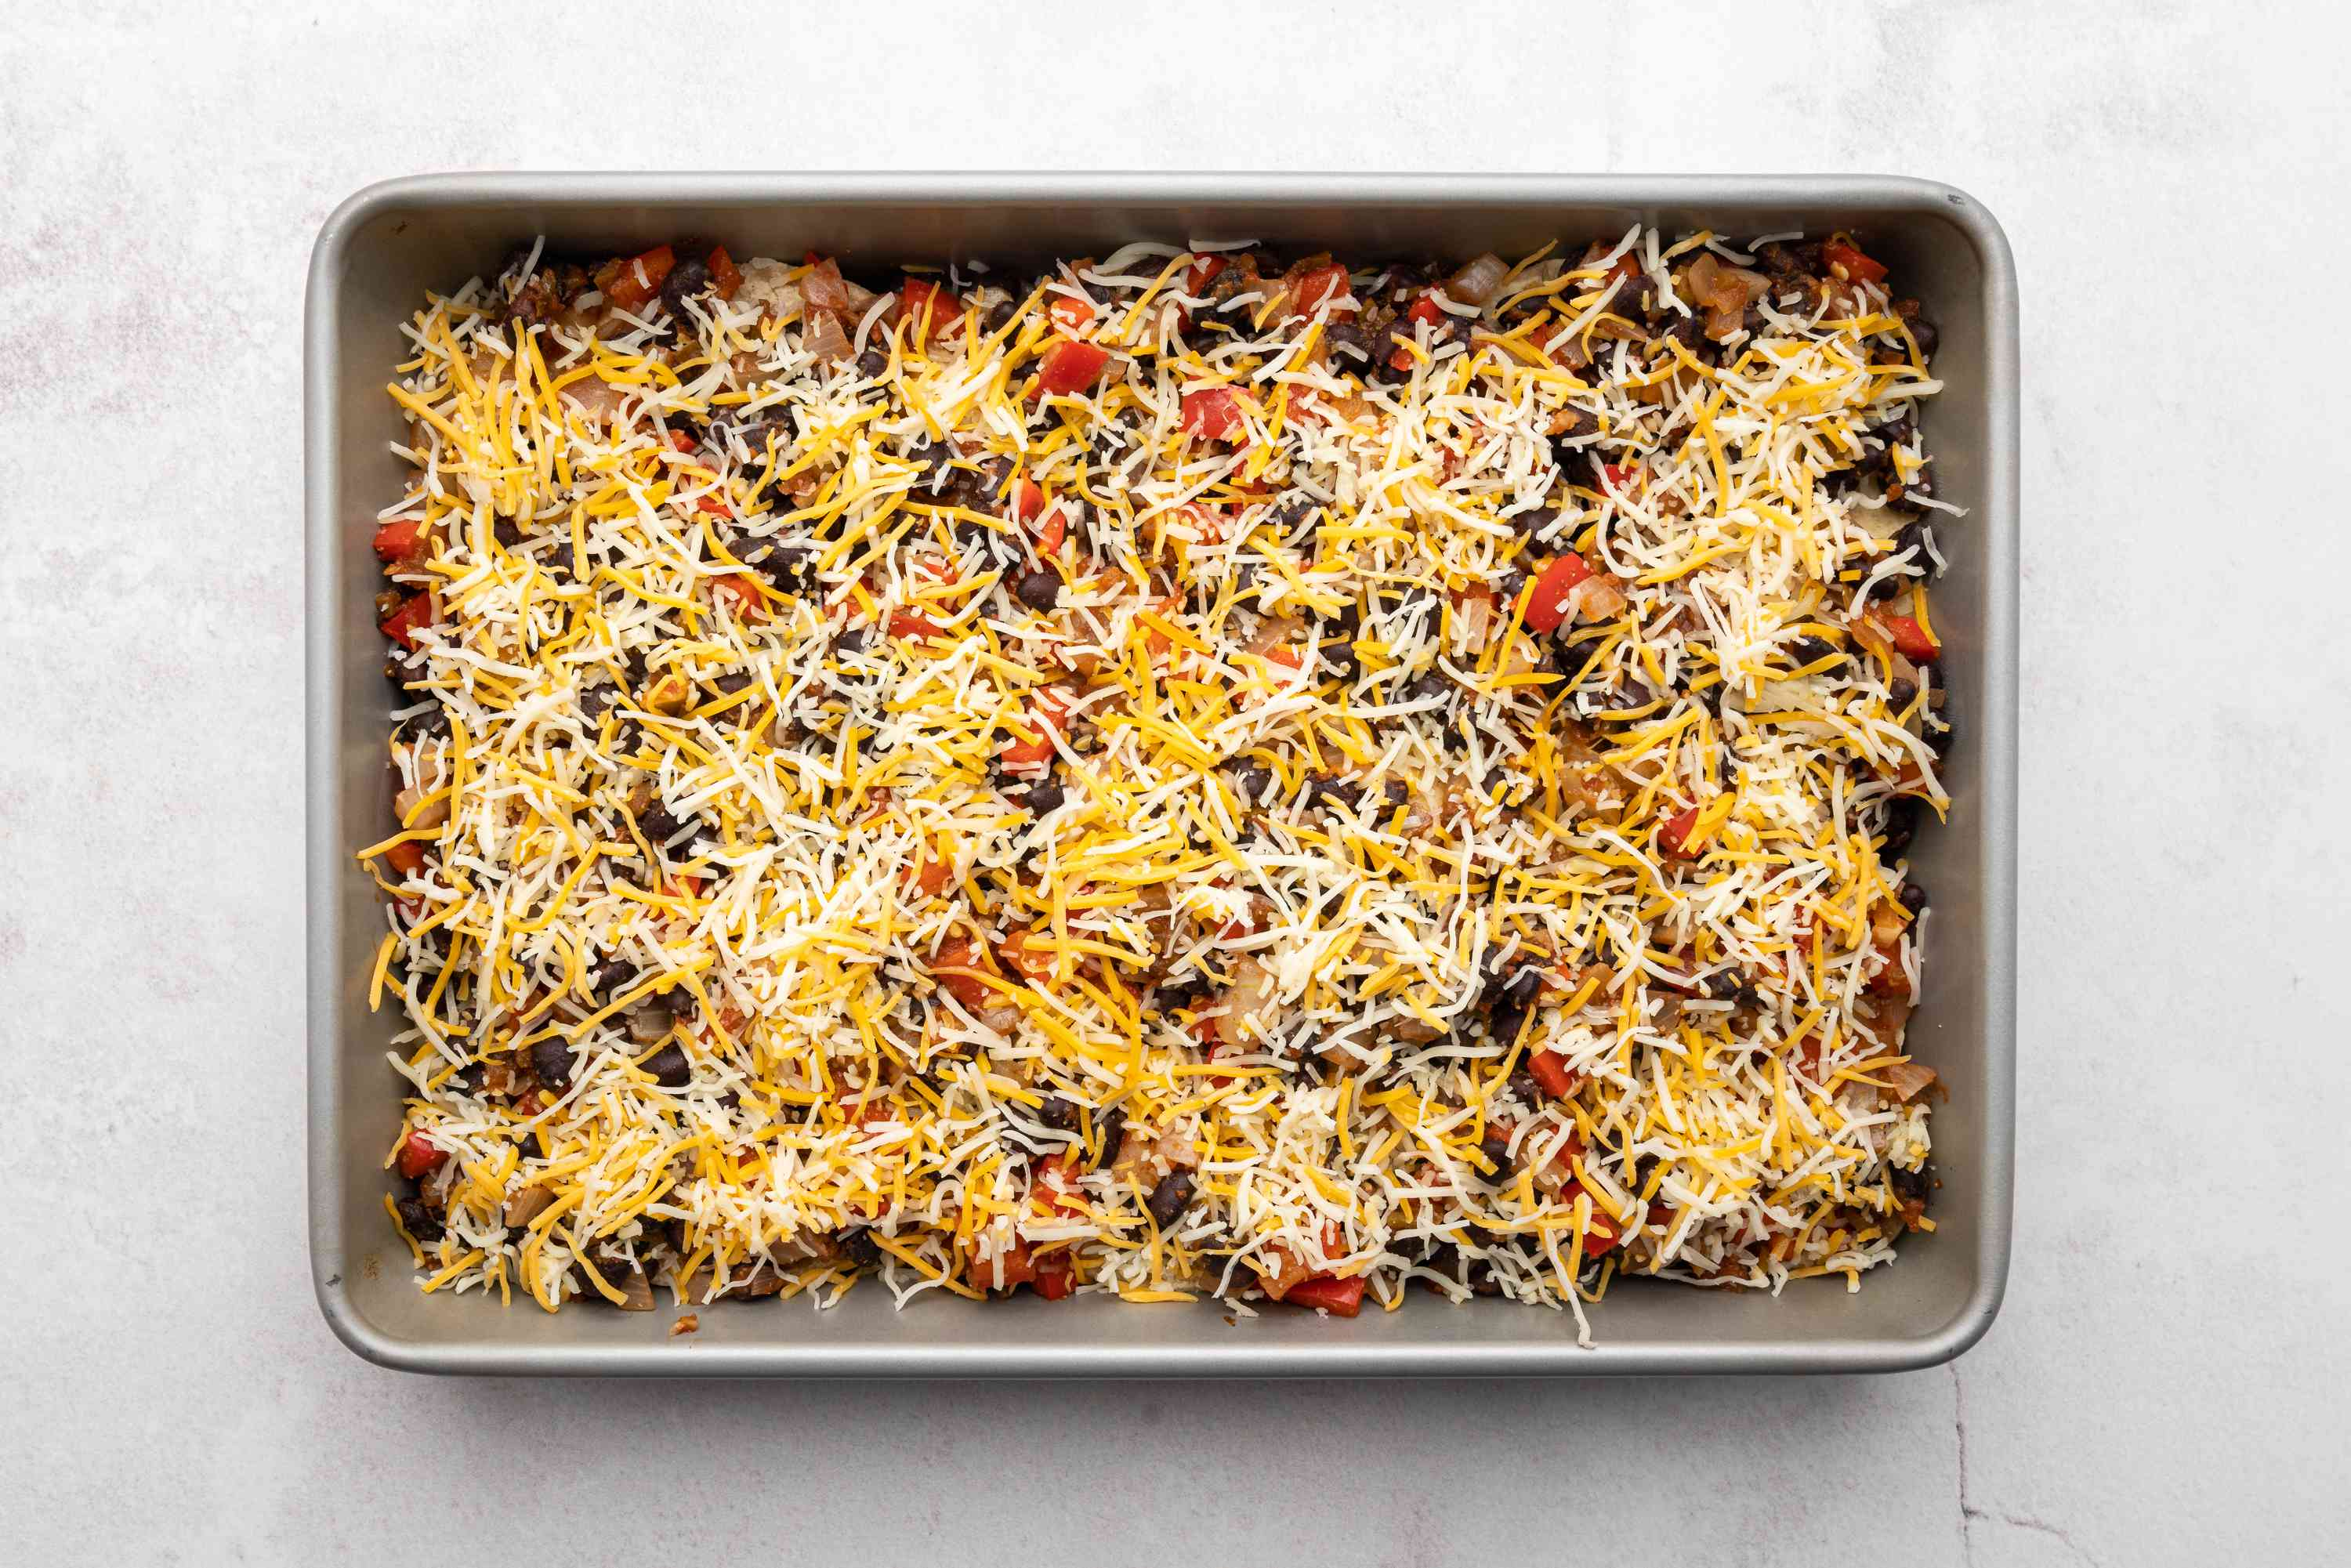 Vegetarian Mexican Casserole With Black Beans in a baking dish